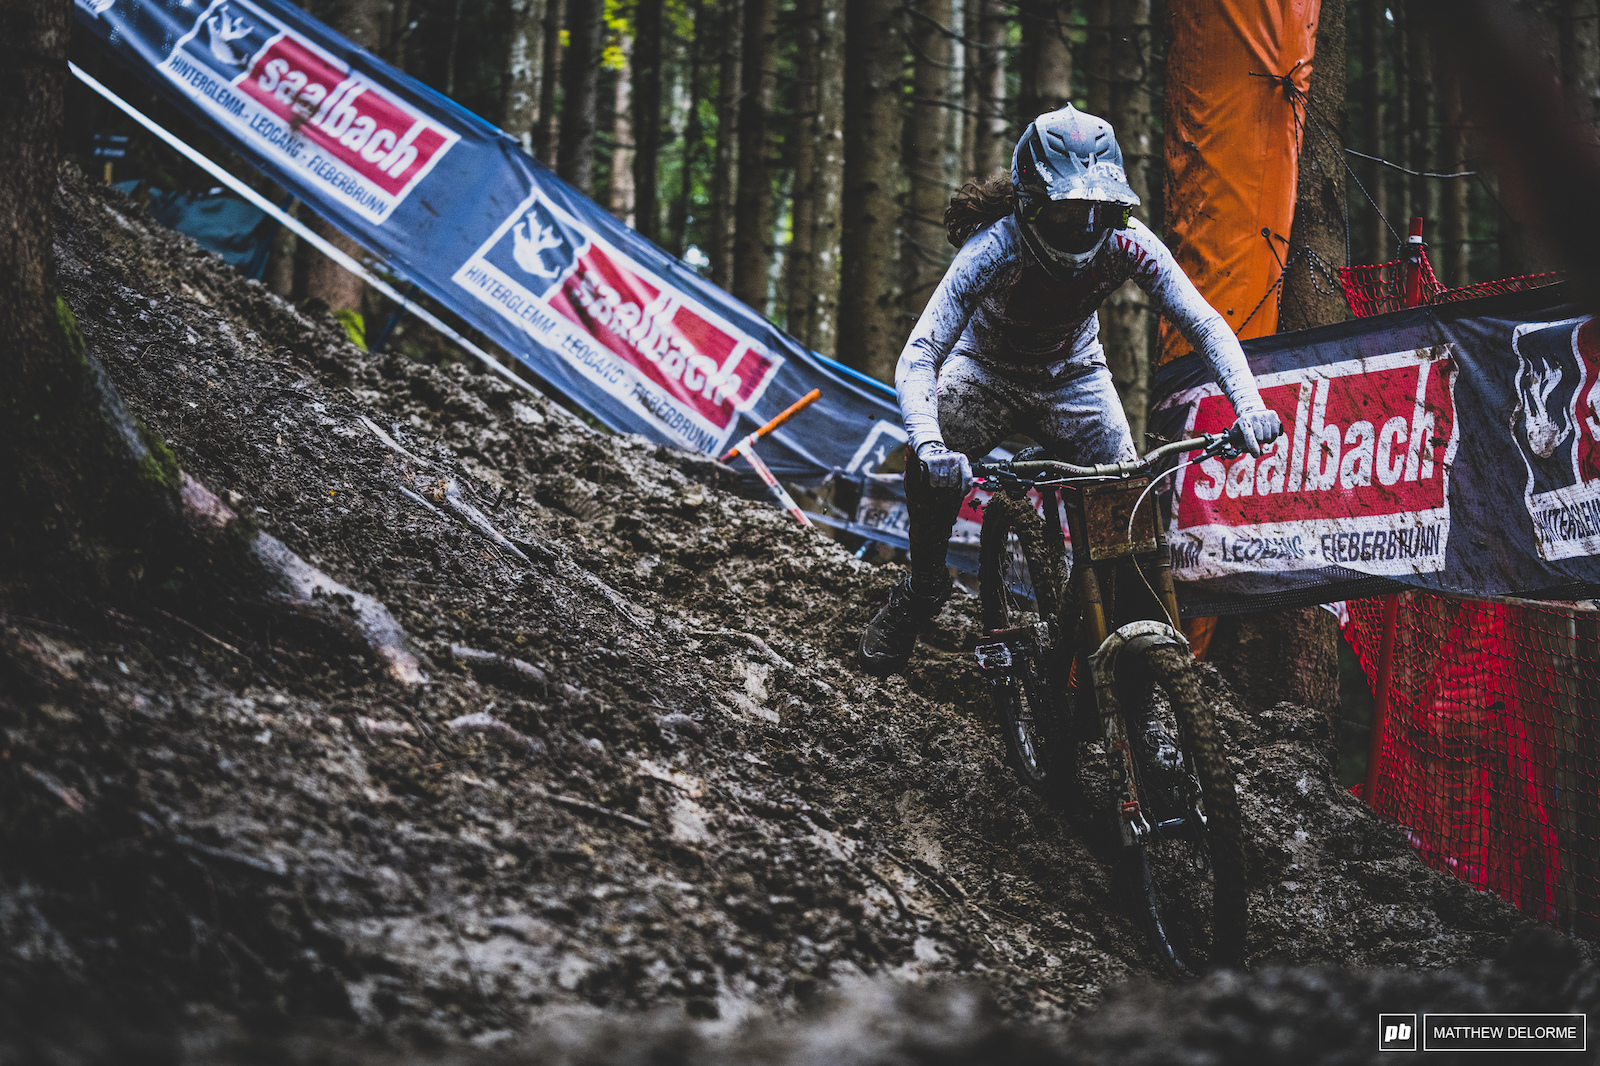 Camille Balanche took the win for the women Slipping and sliding just enough to keep her speed up in the woods.